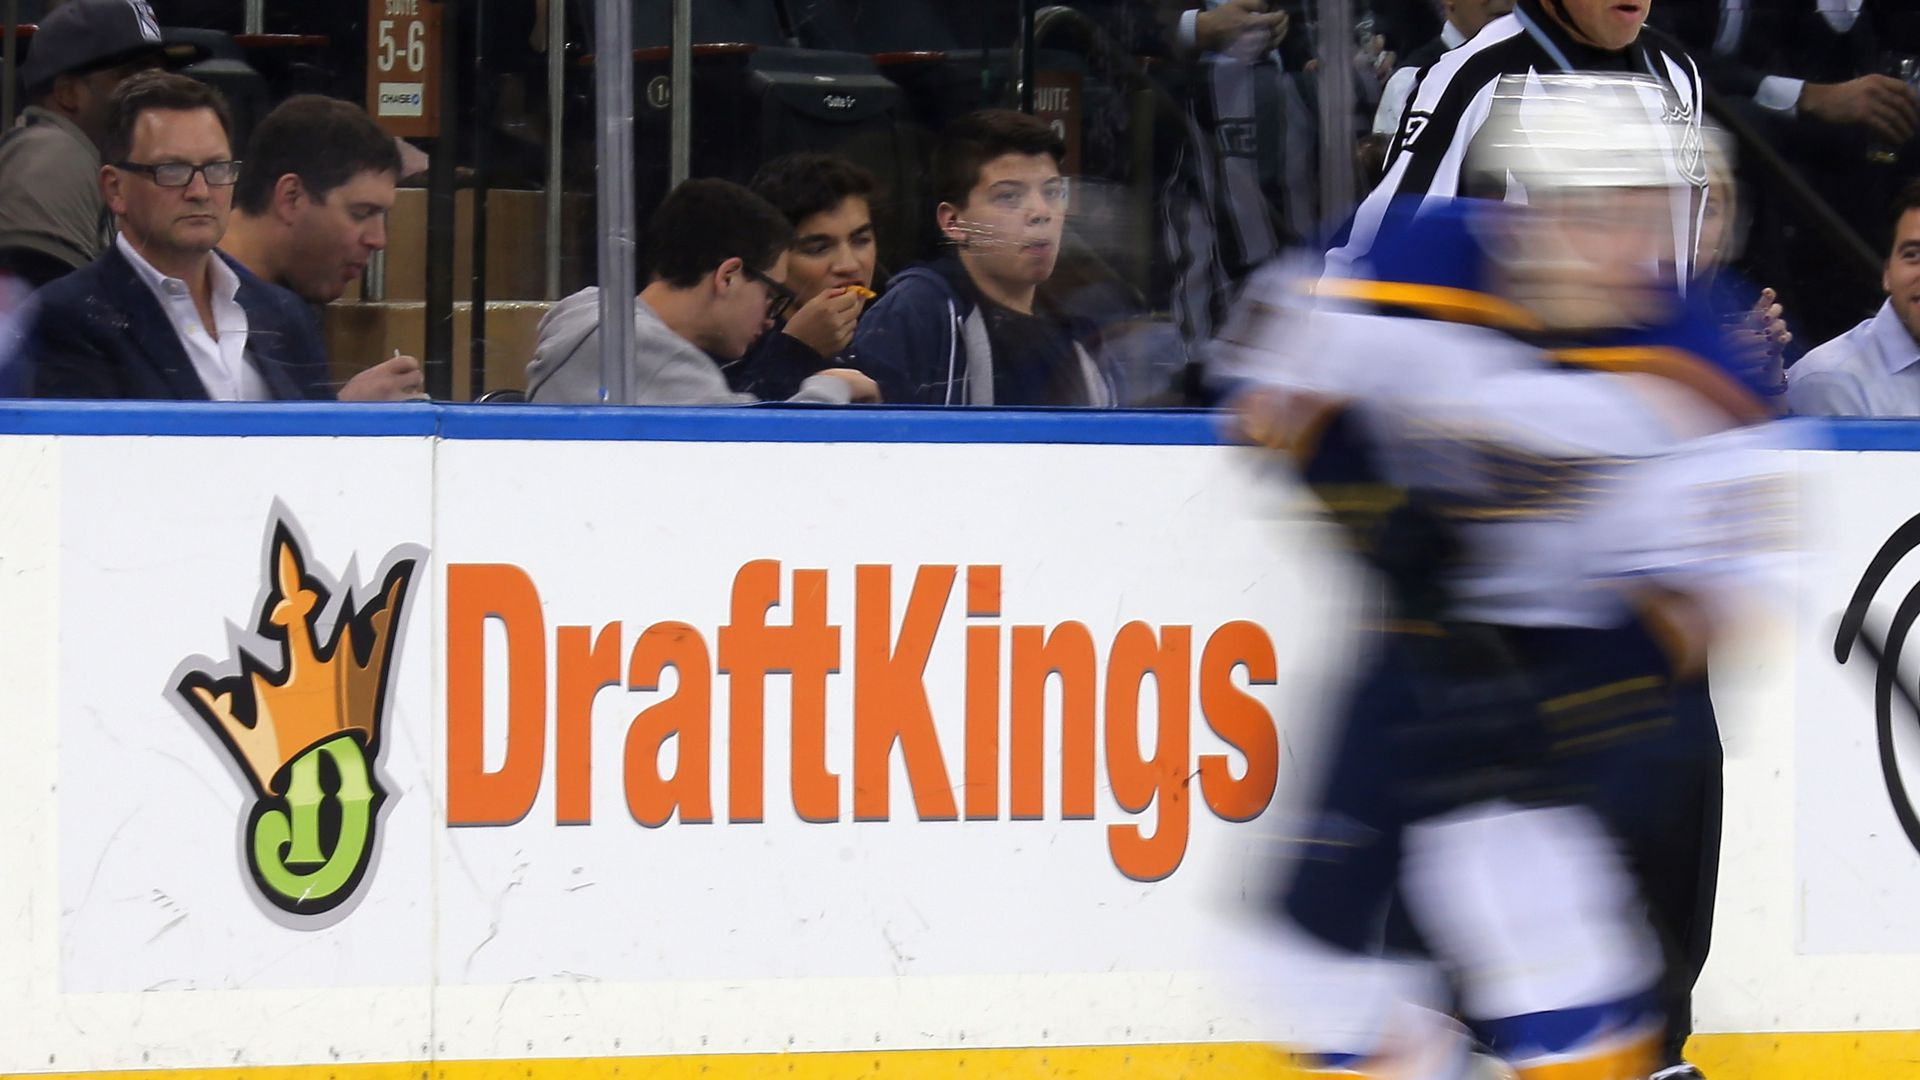 DraftKings logo in a hockey arena